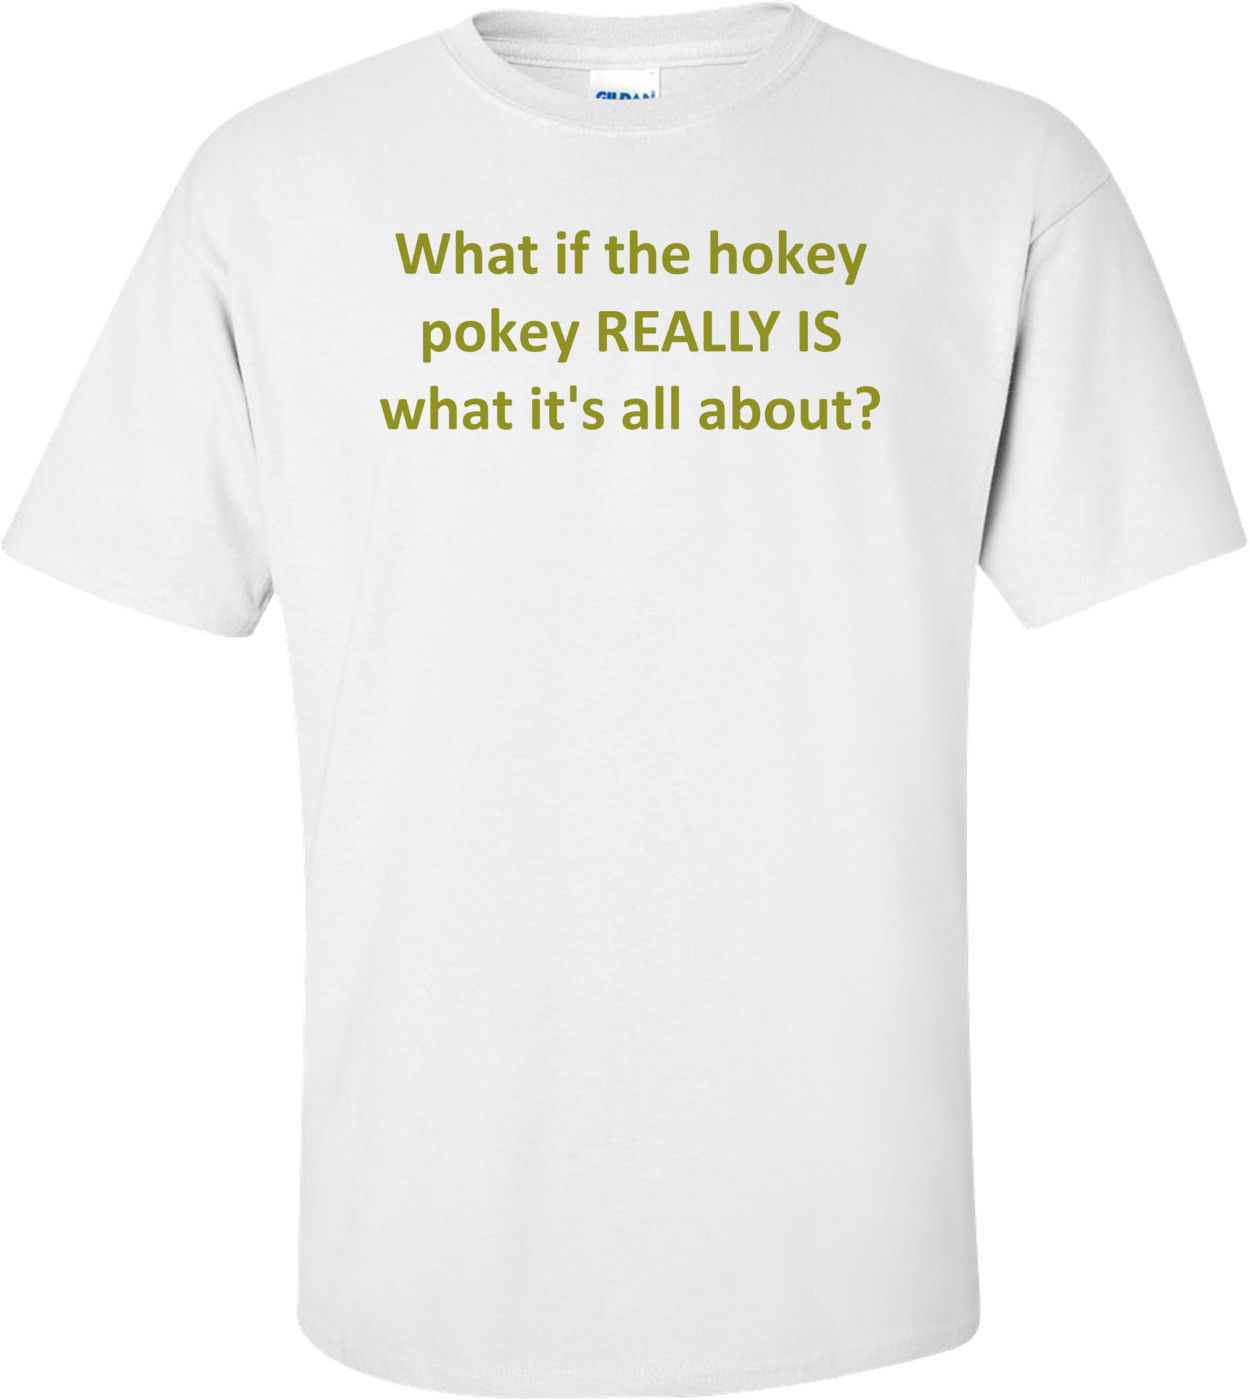 What if the hokey pokey REALLY IS what it's all about? Shirt